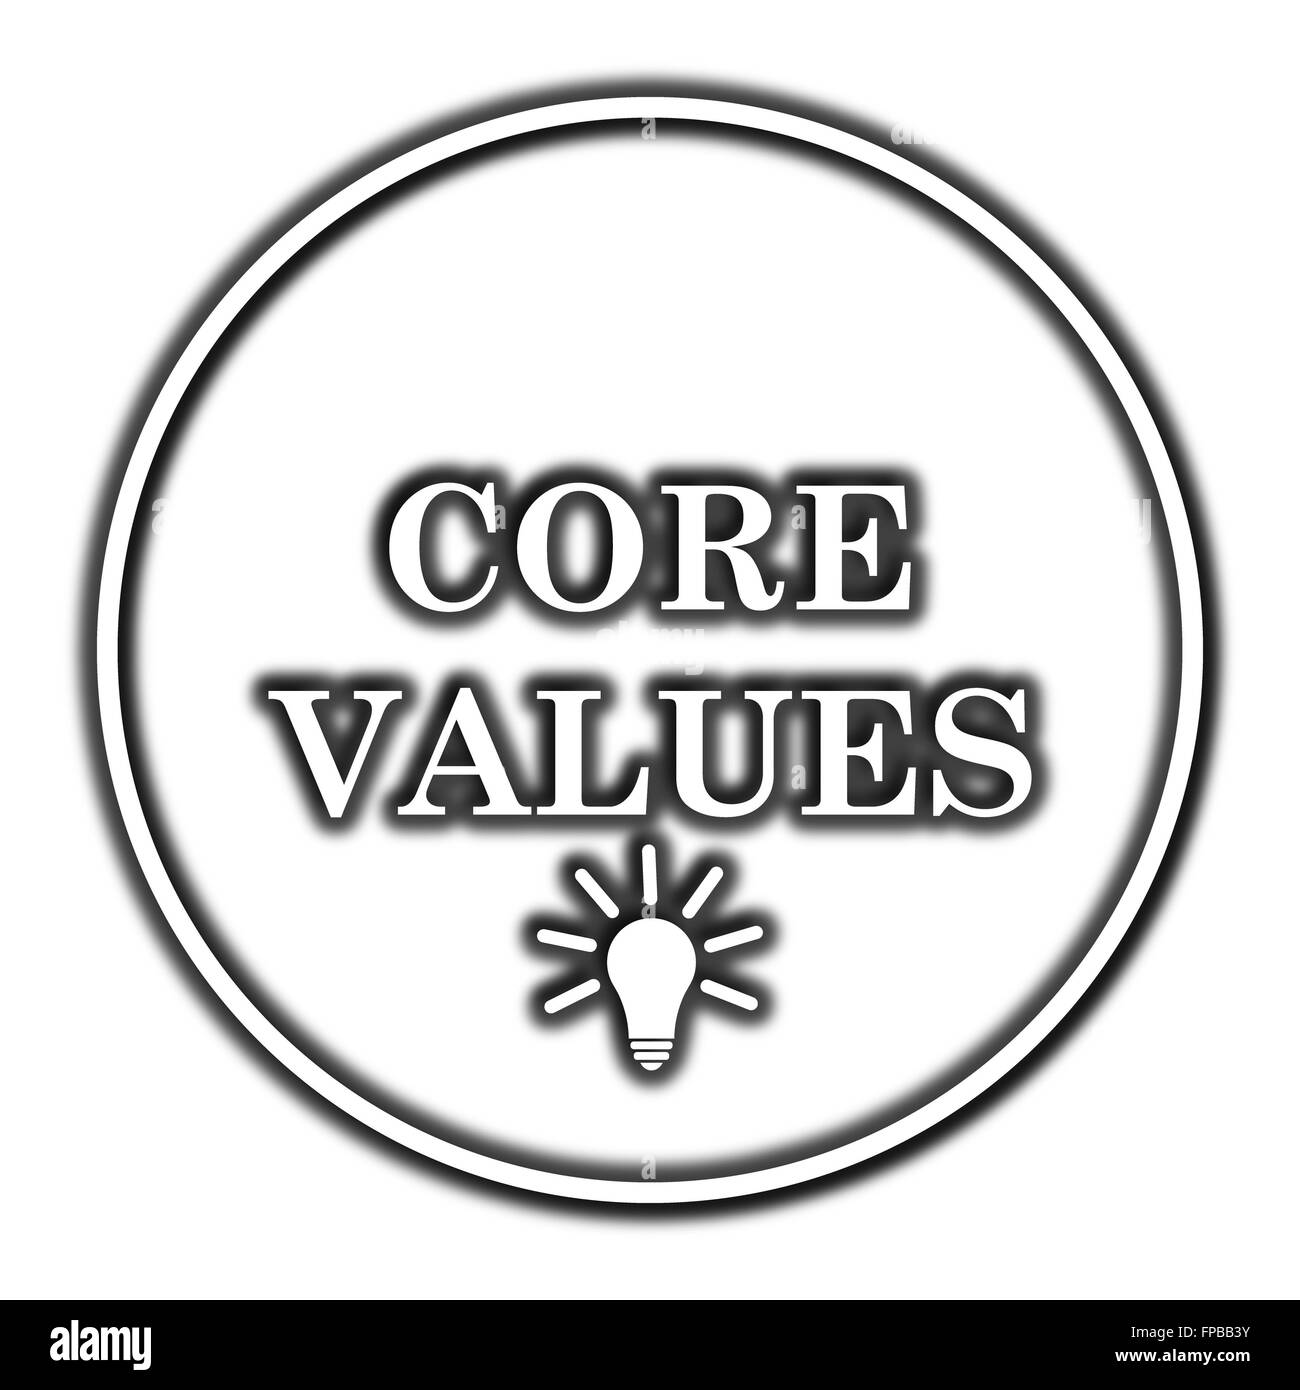 Core values icon. Internet button on white background. - Stock Image